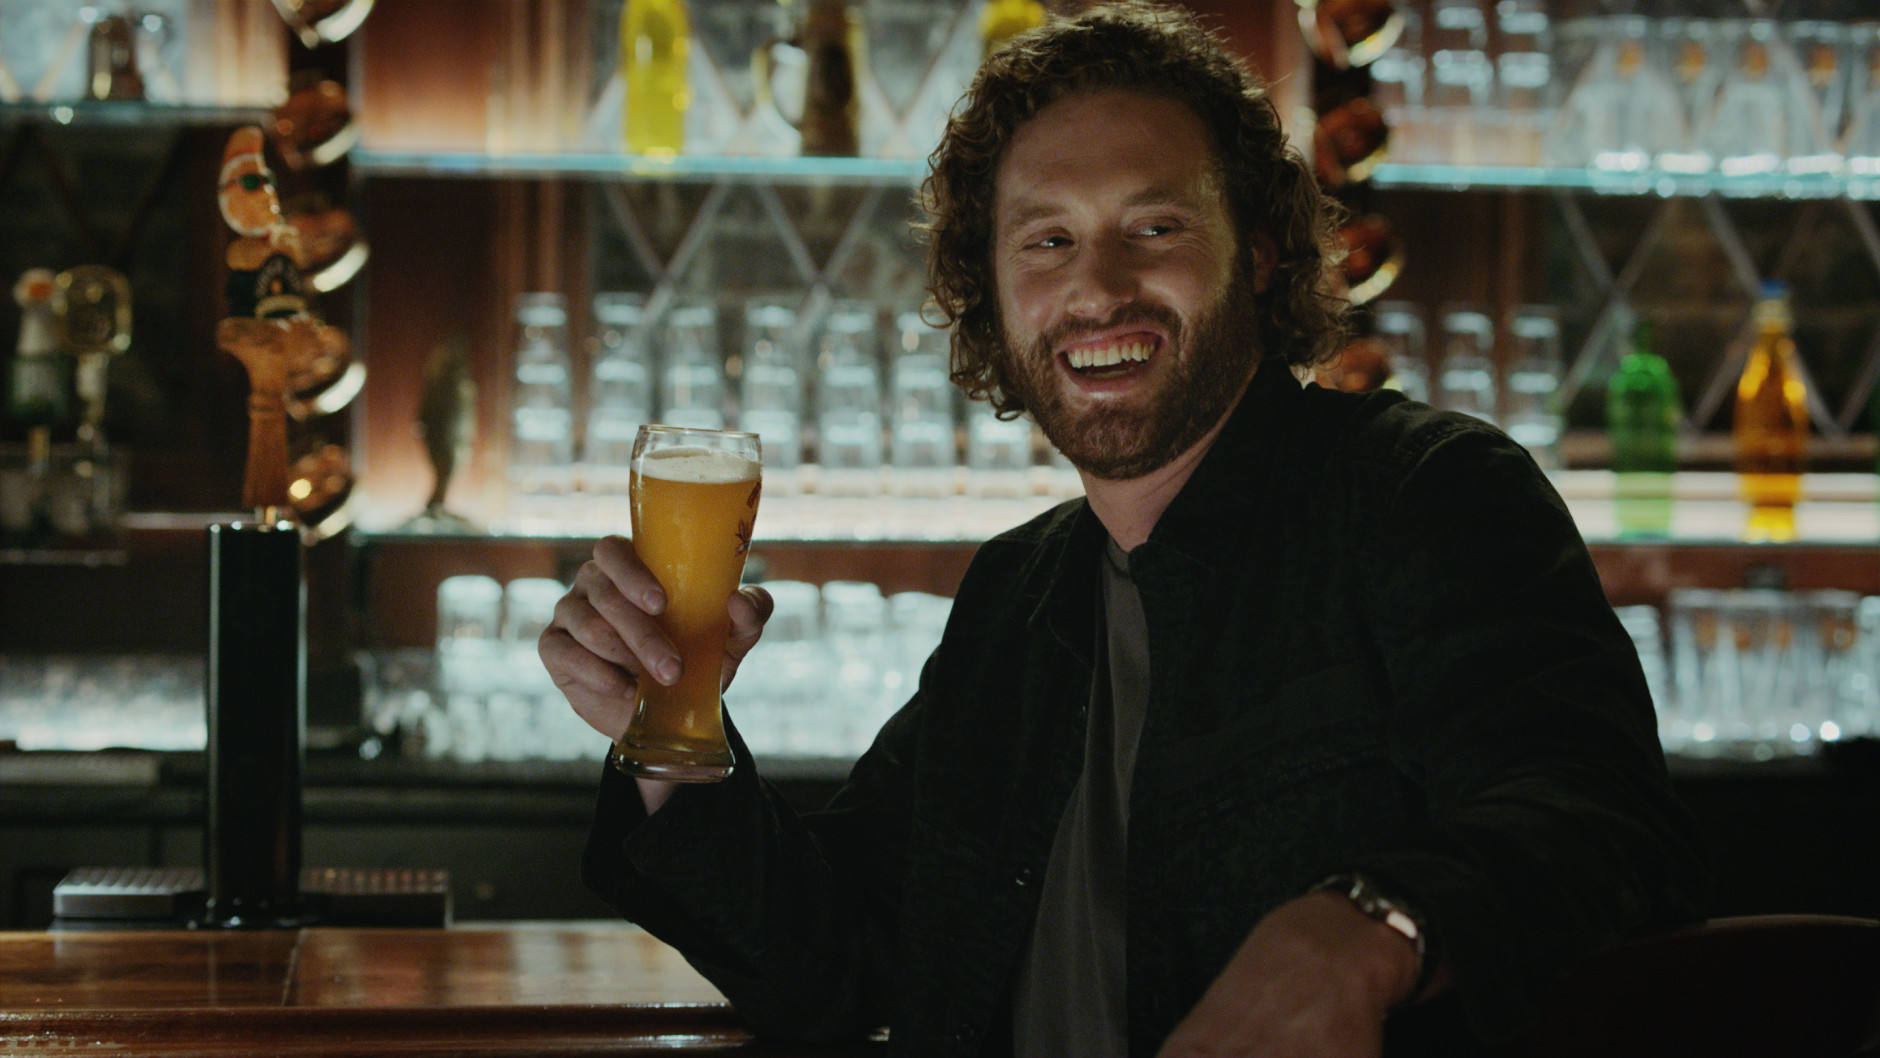 This image provided by Shock Top shows a still from the company's Super Bowl 50 ad spot featuring T.J. Miller. Super Bowl 50, between the Denver Broncos and the Carolina Panthers, will be played Sunday, Feb. 7, 2016. (Shock Top via AP)